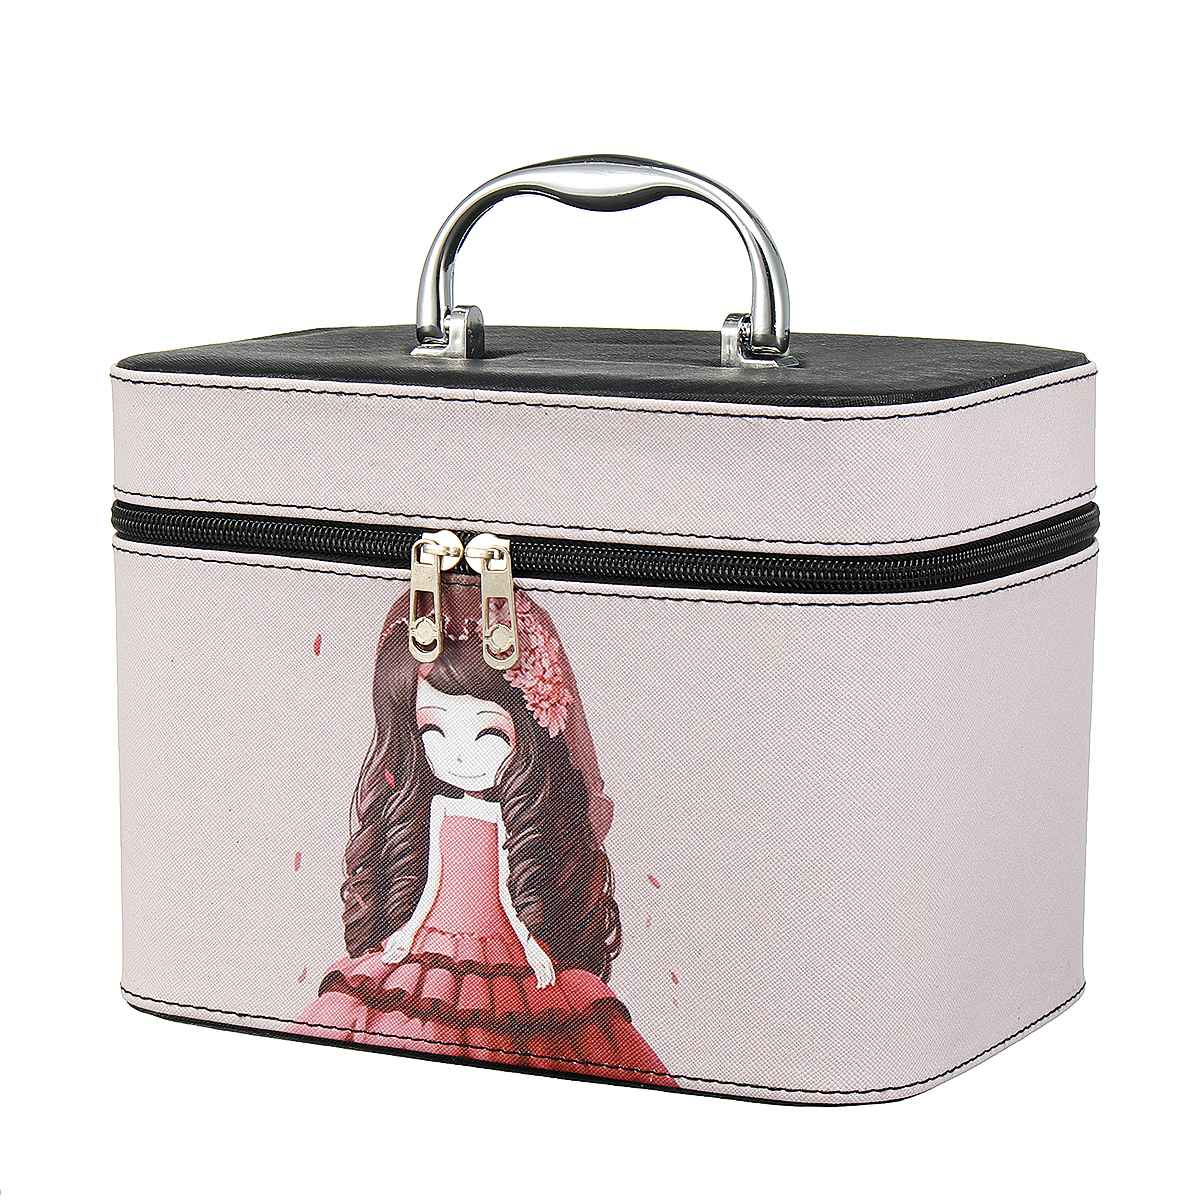 Professional Large Capacity Cosmetic Bag PU Leather Makeup Box Travel Organizer For Cosmetics Fashion Toiletry Bags Suitcases